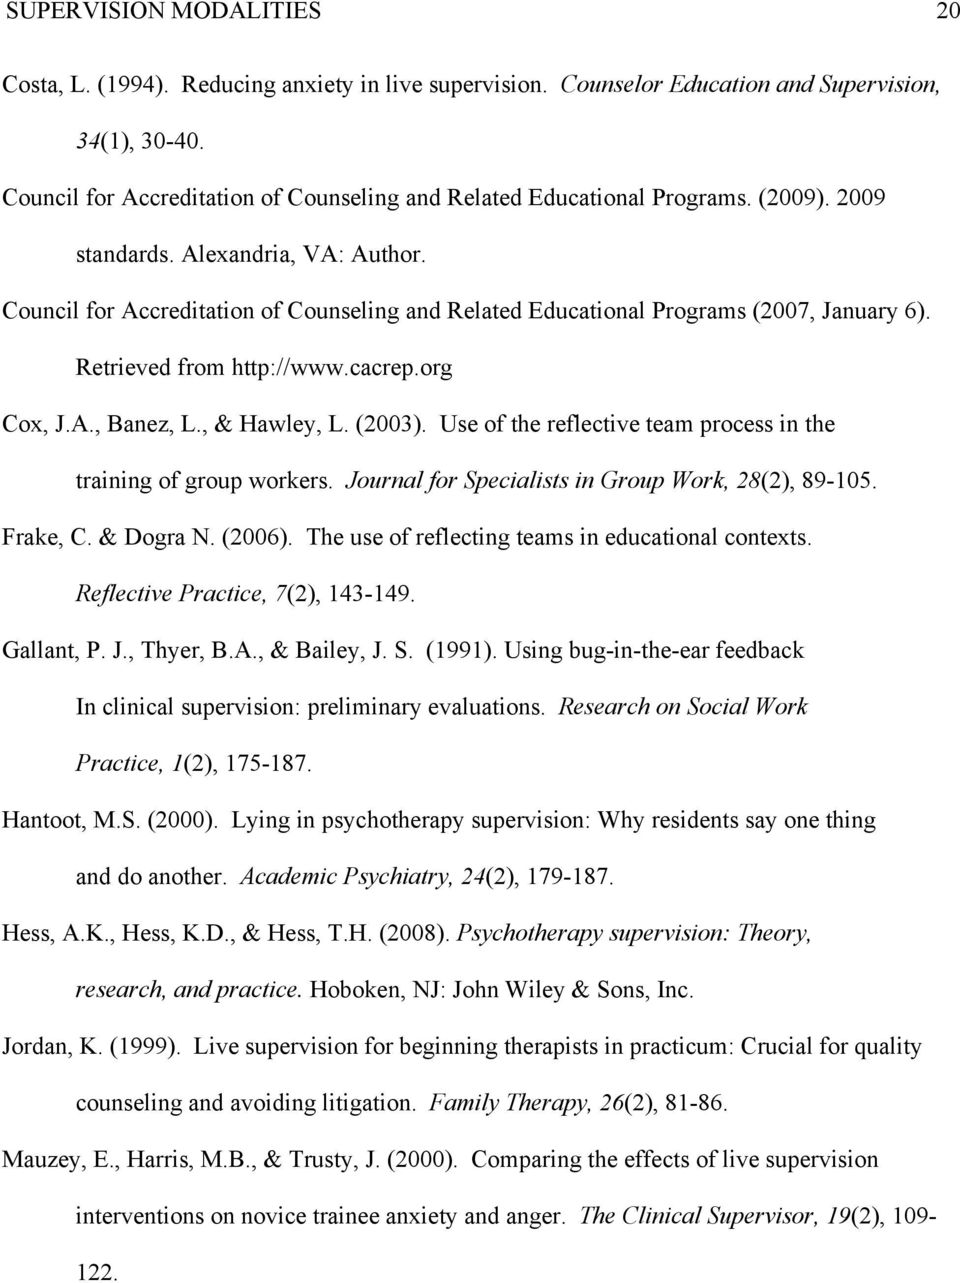 Council for Accreditation of Counseling and Related Educational Programs (2007, January 6). Retrieved from http://www.cacrep.org Cox, J.A., Banez, L., & Hawley, L. (2003).